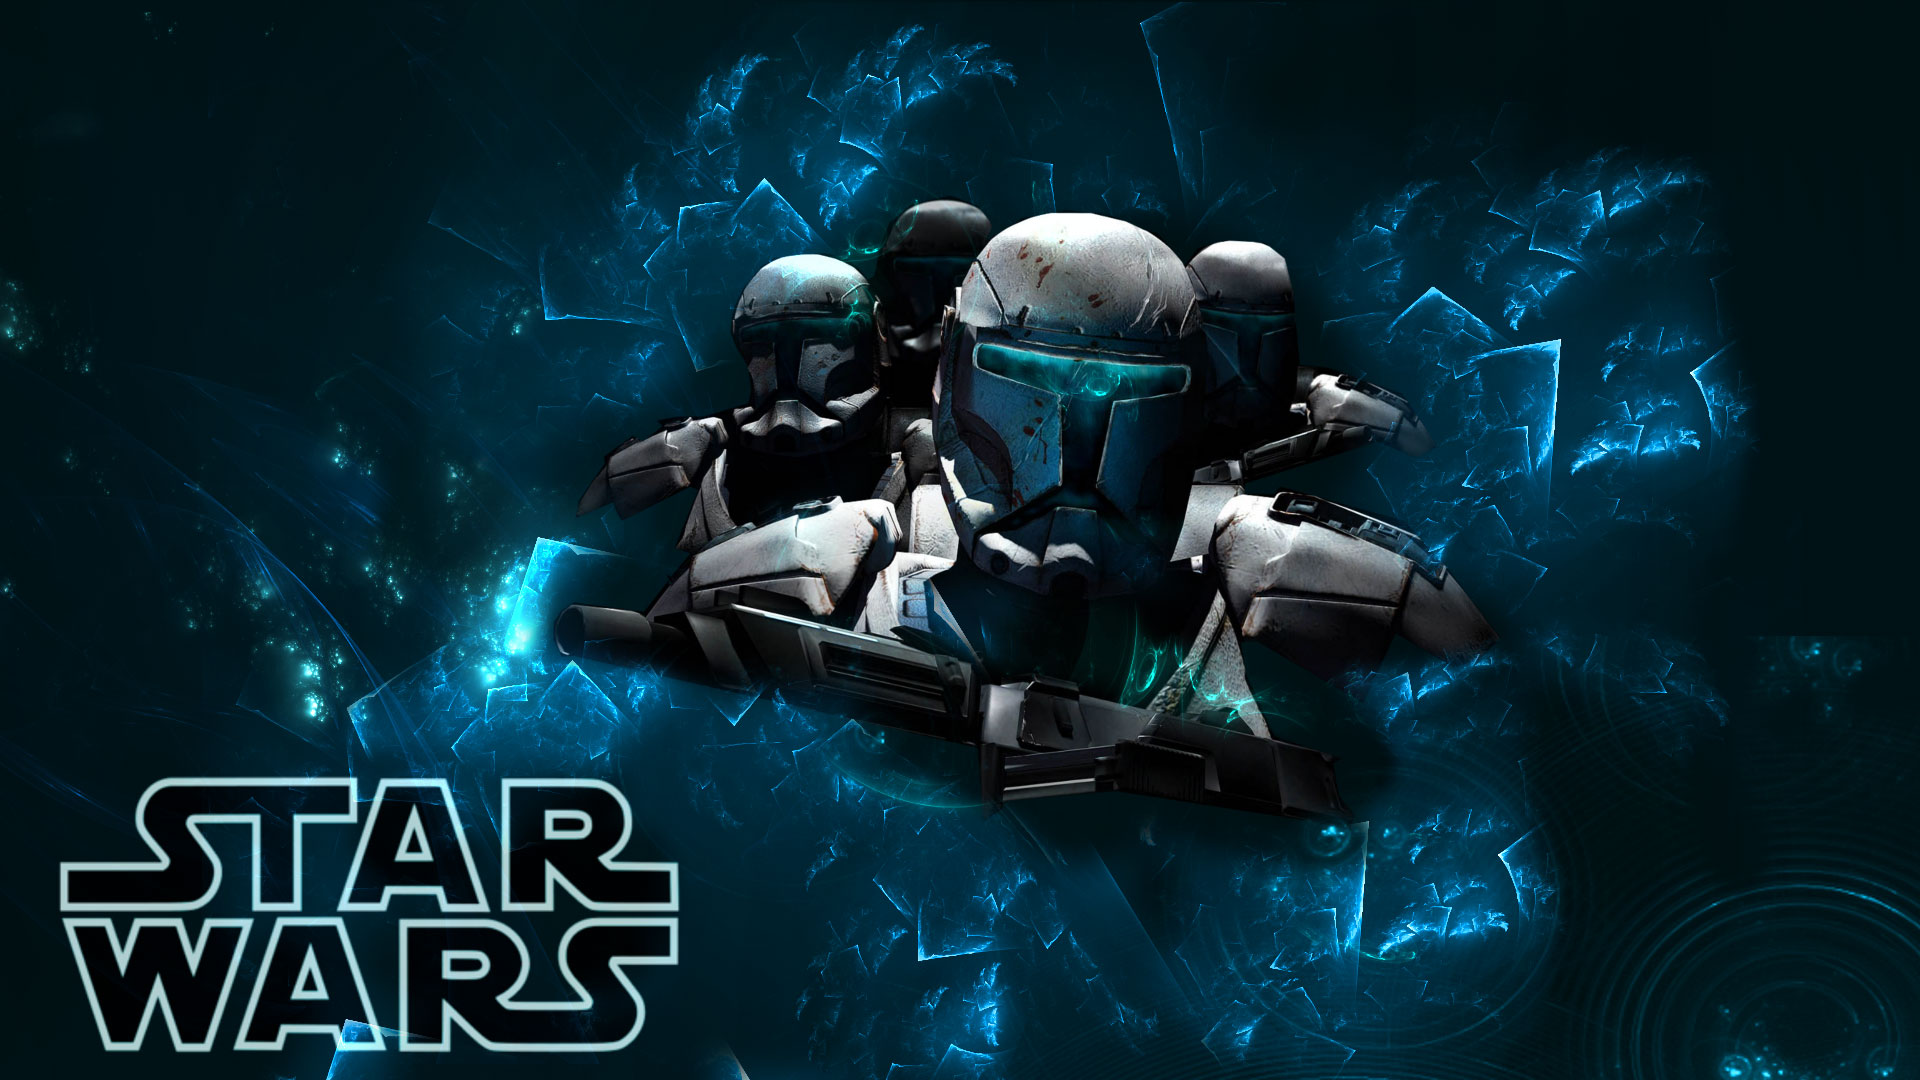 Star Wars The Clone Wars Wallpaper: Largest Collection Of Star Wars Wallpapers For Free Download